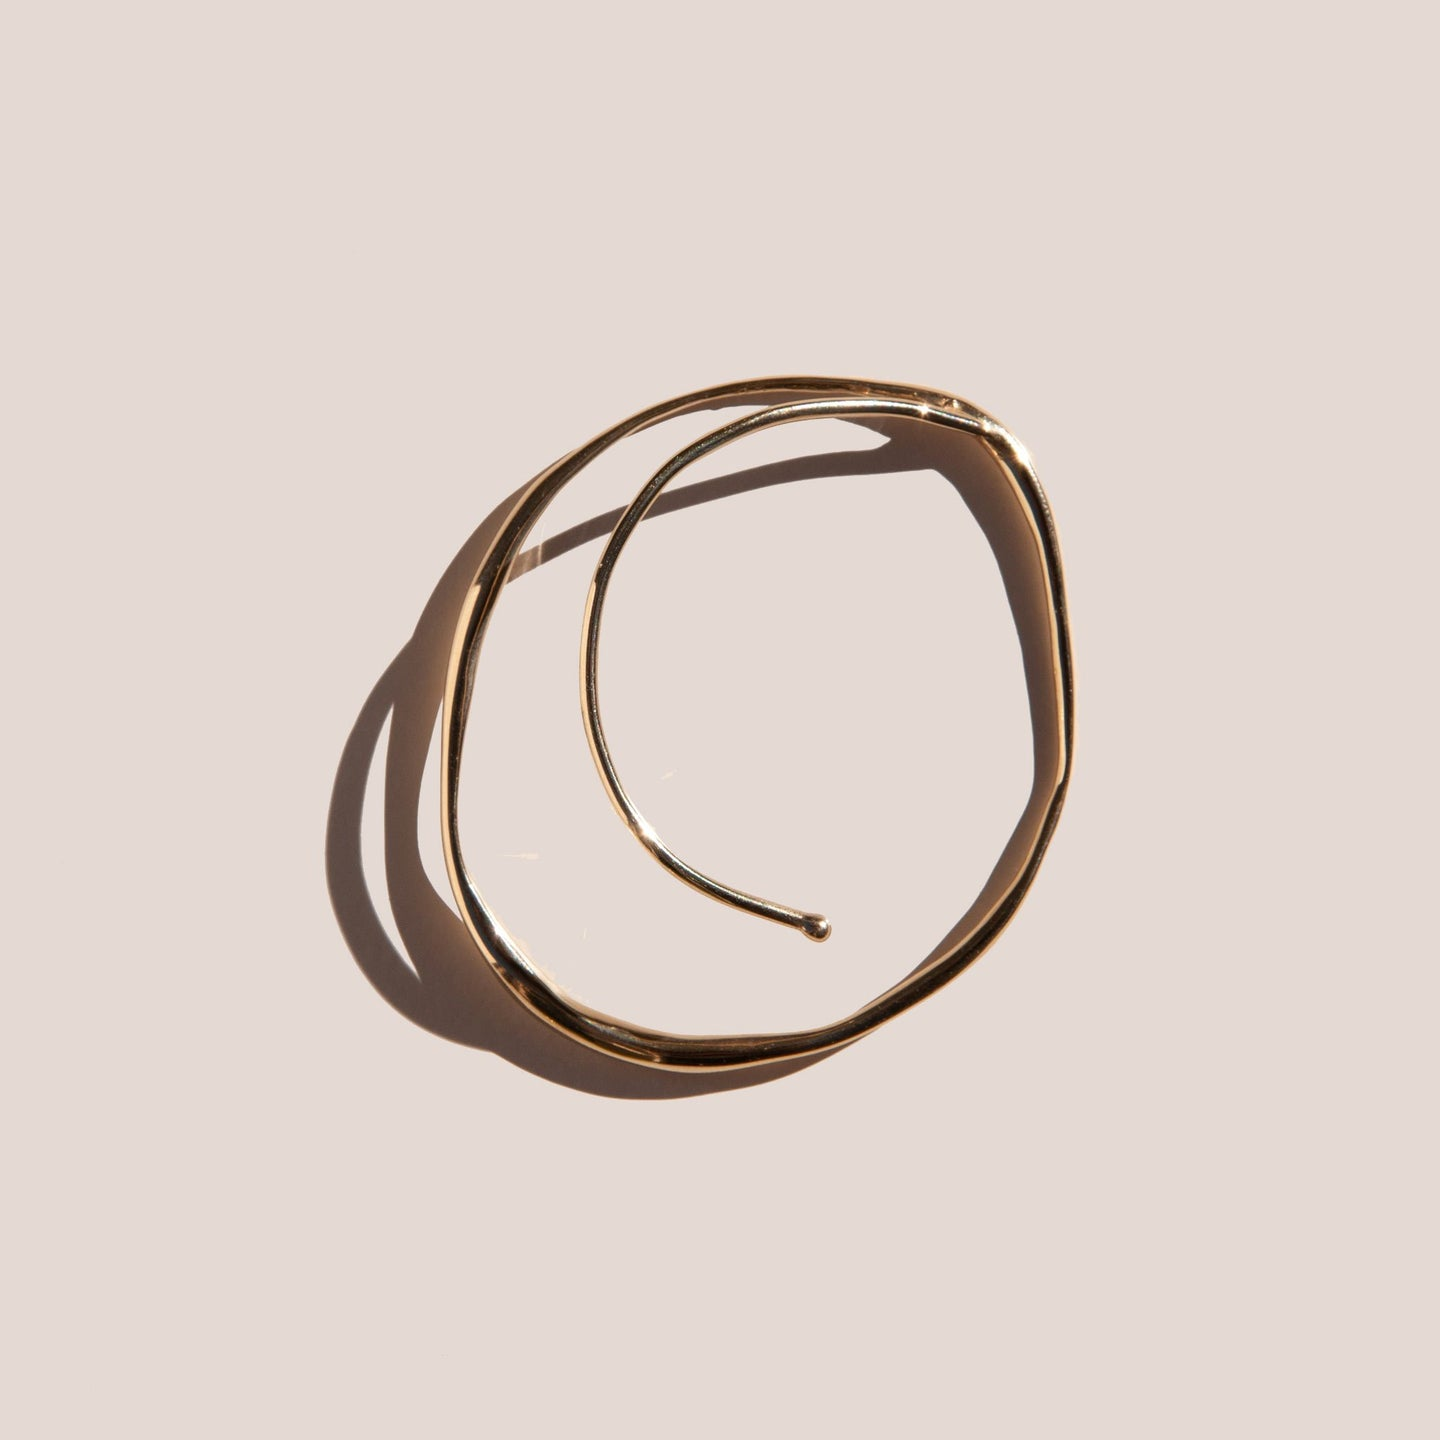 Faris - Vinea Orbit Ear Cuff, available at LCD.